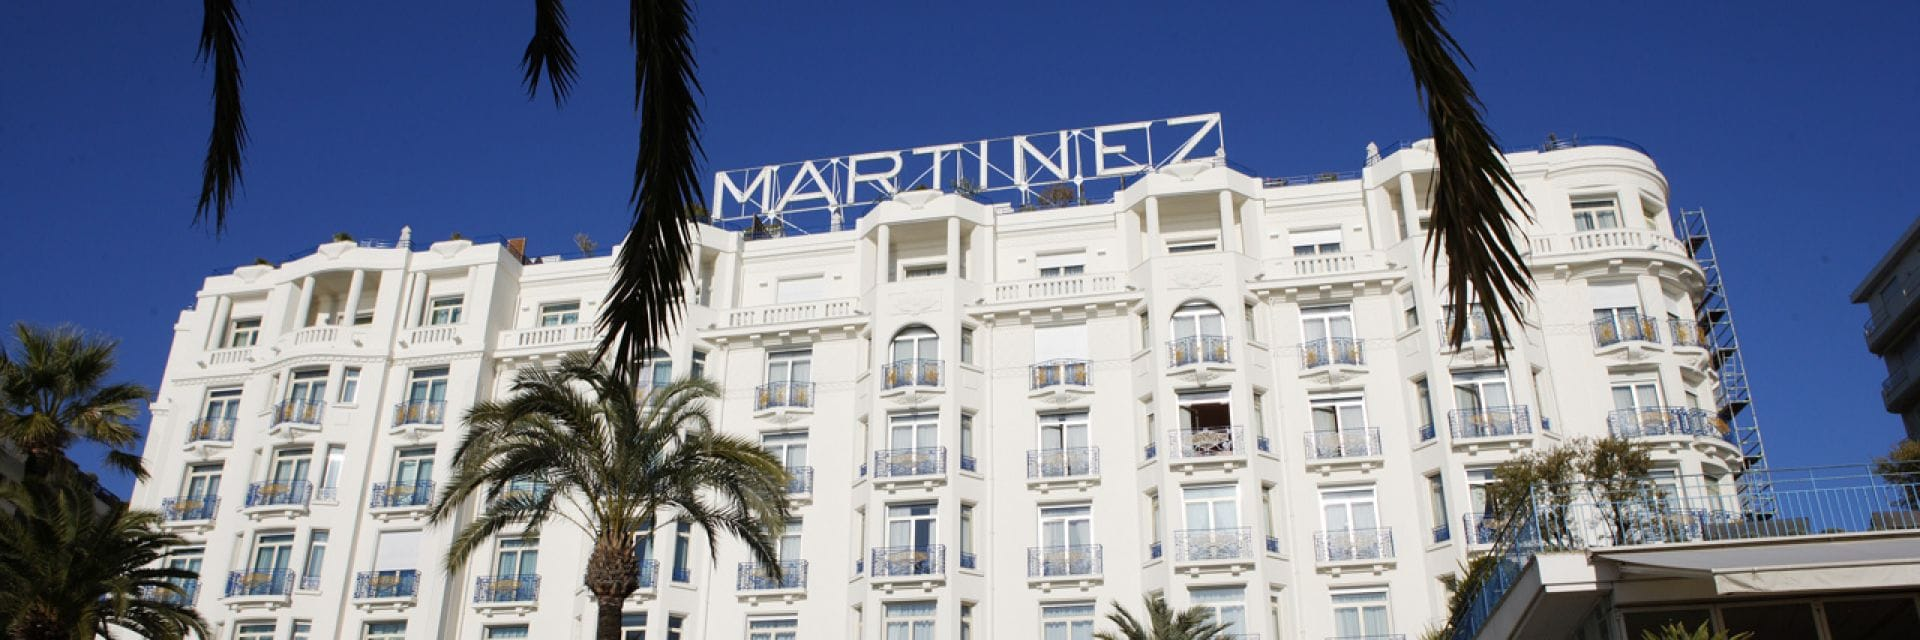 Luxury 5* Hôtel Martinez Cannes by Hyatt on la Croisette